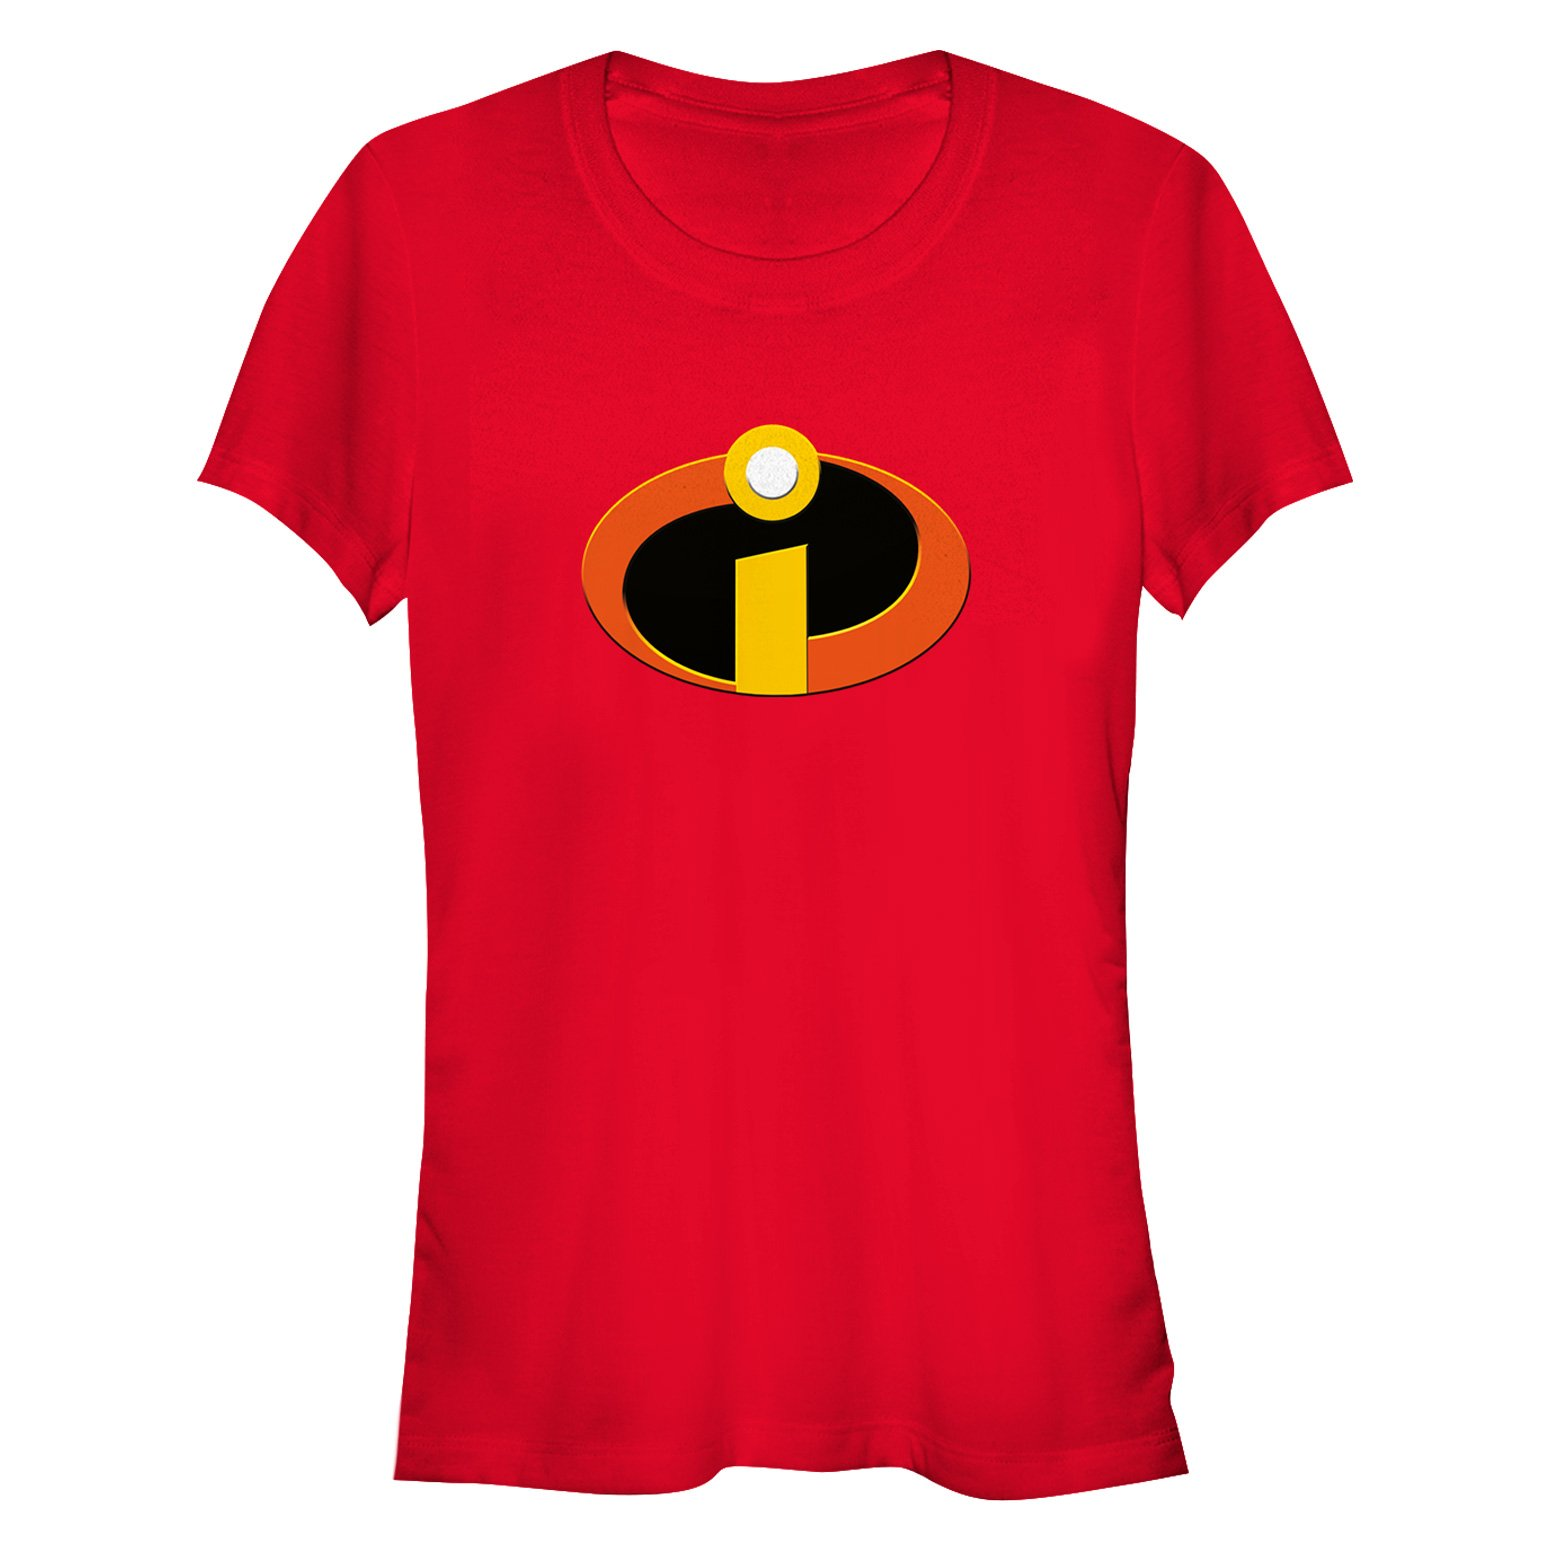 Disney Women's The Incredibles Logo Graphic T-Shirt, Red, M